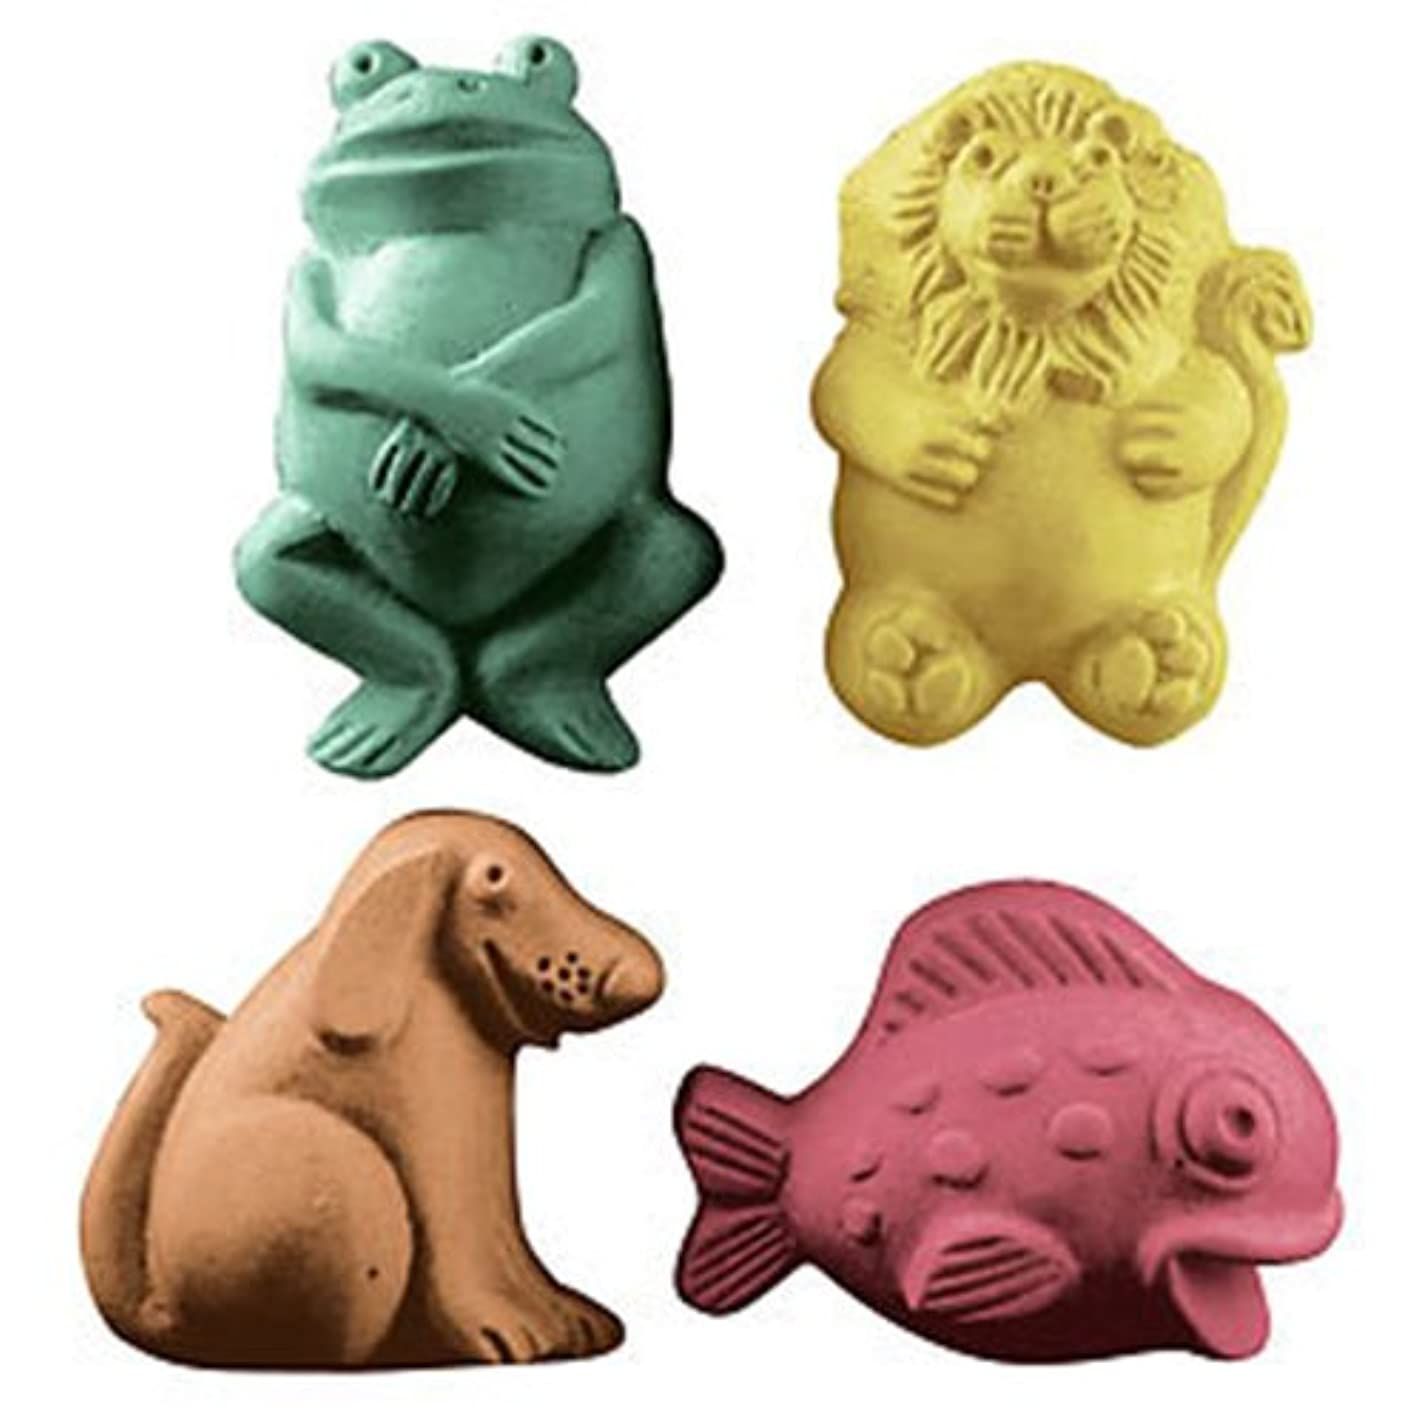 Lion Fish Dog Frog Guest Soap Mold (MW 109) -  Milky Way. Melt & Pour, Cold Process w/ Exclusive Copyrighted Full Color Cybrtrayd Soap Molding Instructions in a Sealed Poly Bag